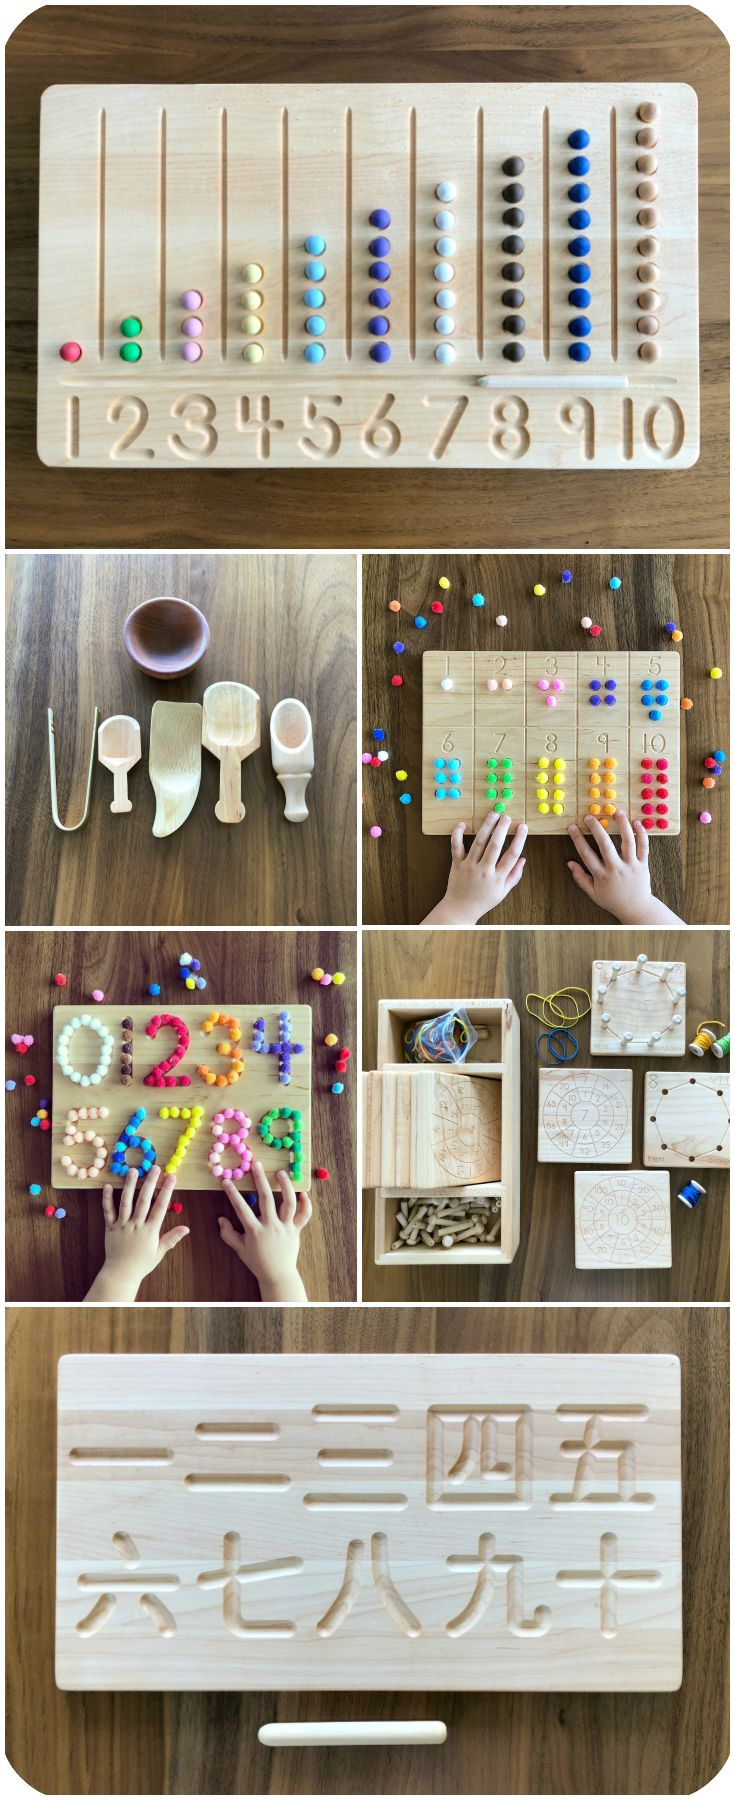 Montessori Toys and Homeschool Materials on Etsy